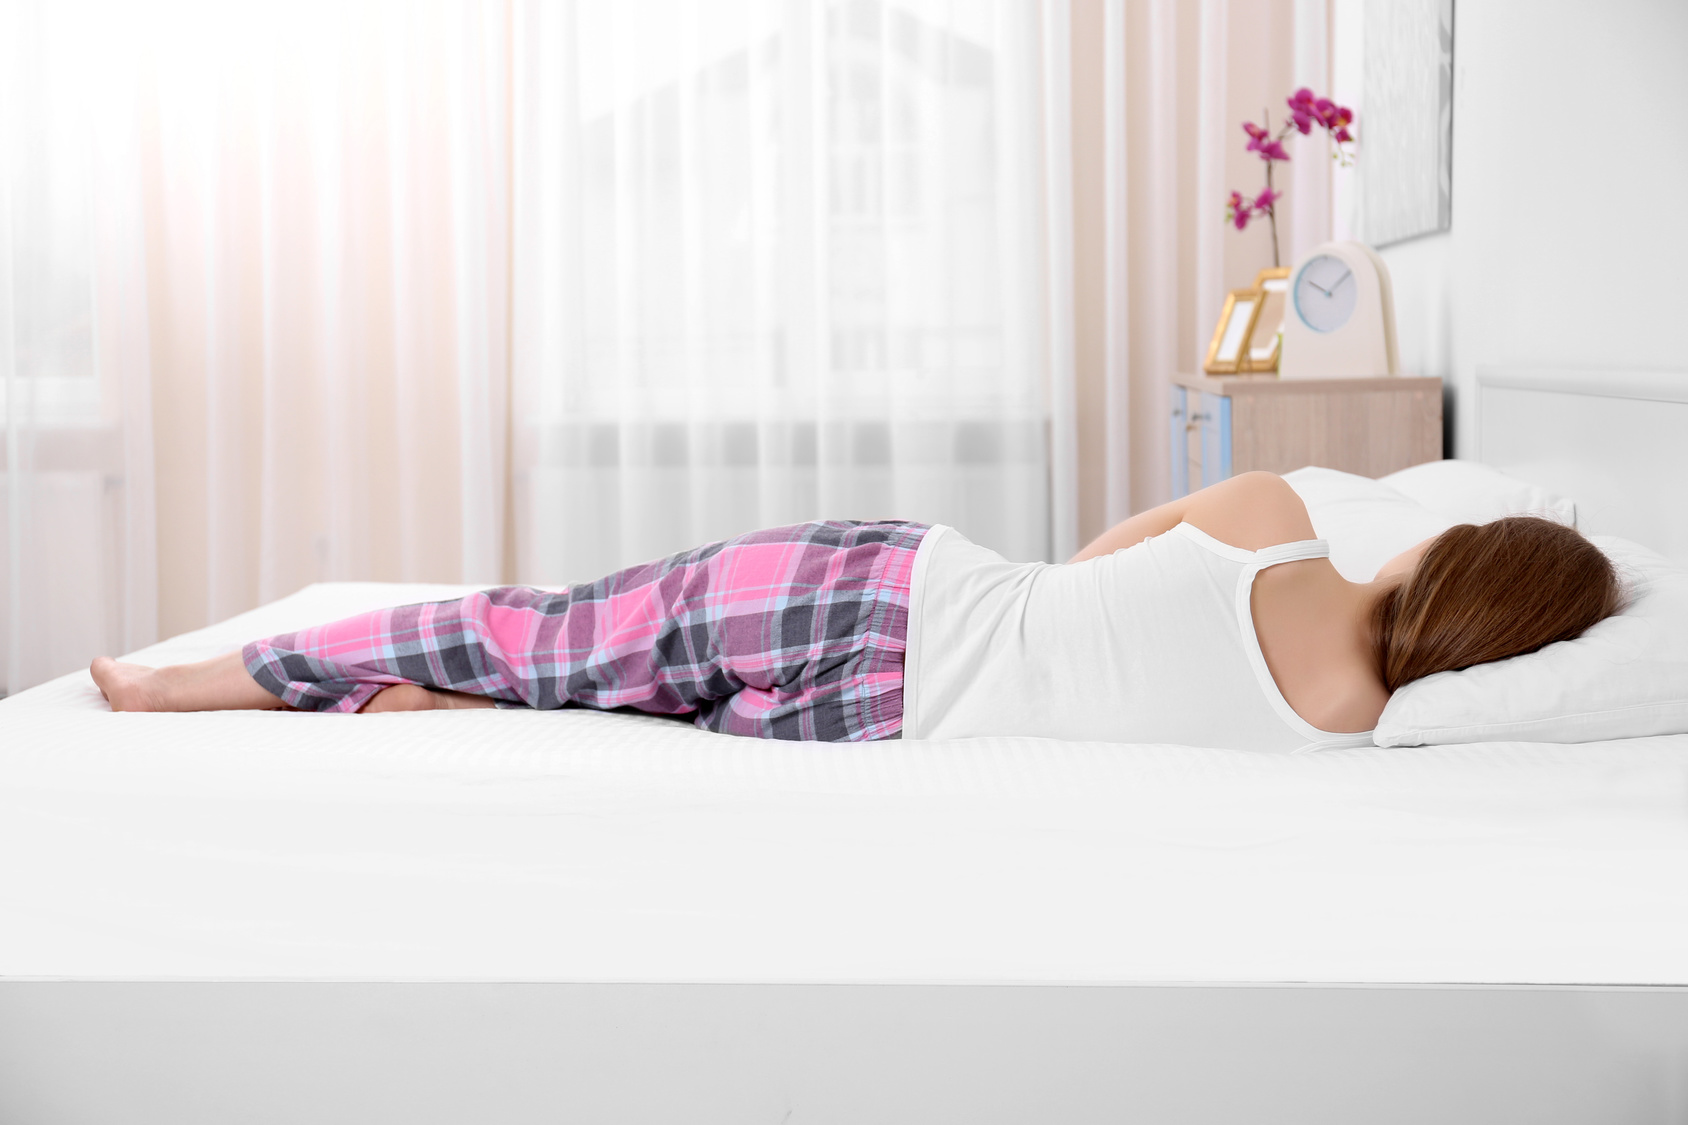 Young woman lying on bed with orthopedic pillow against blurred background. Healthy posture concept